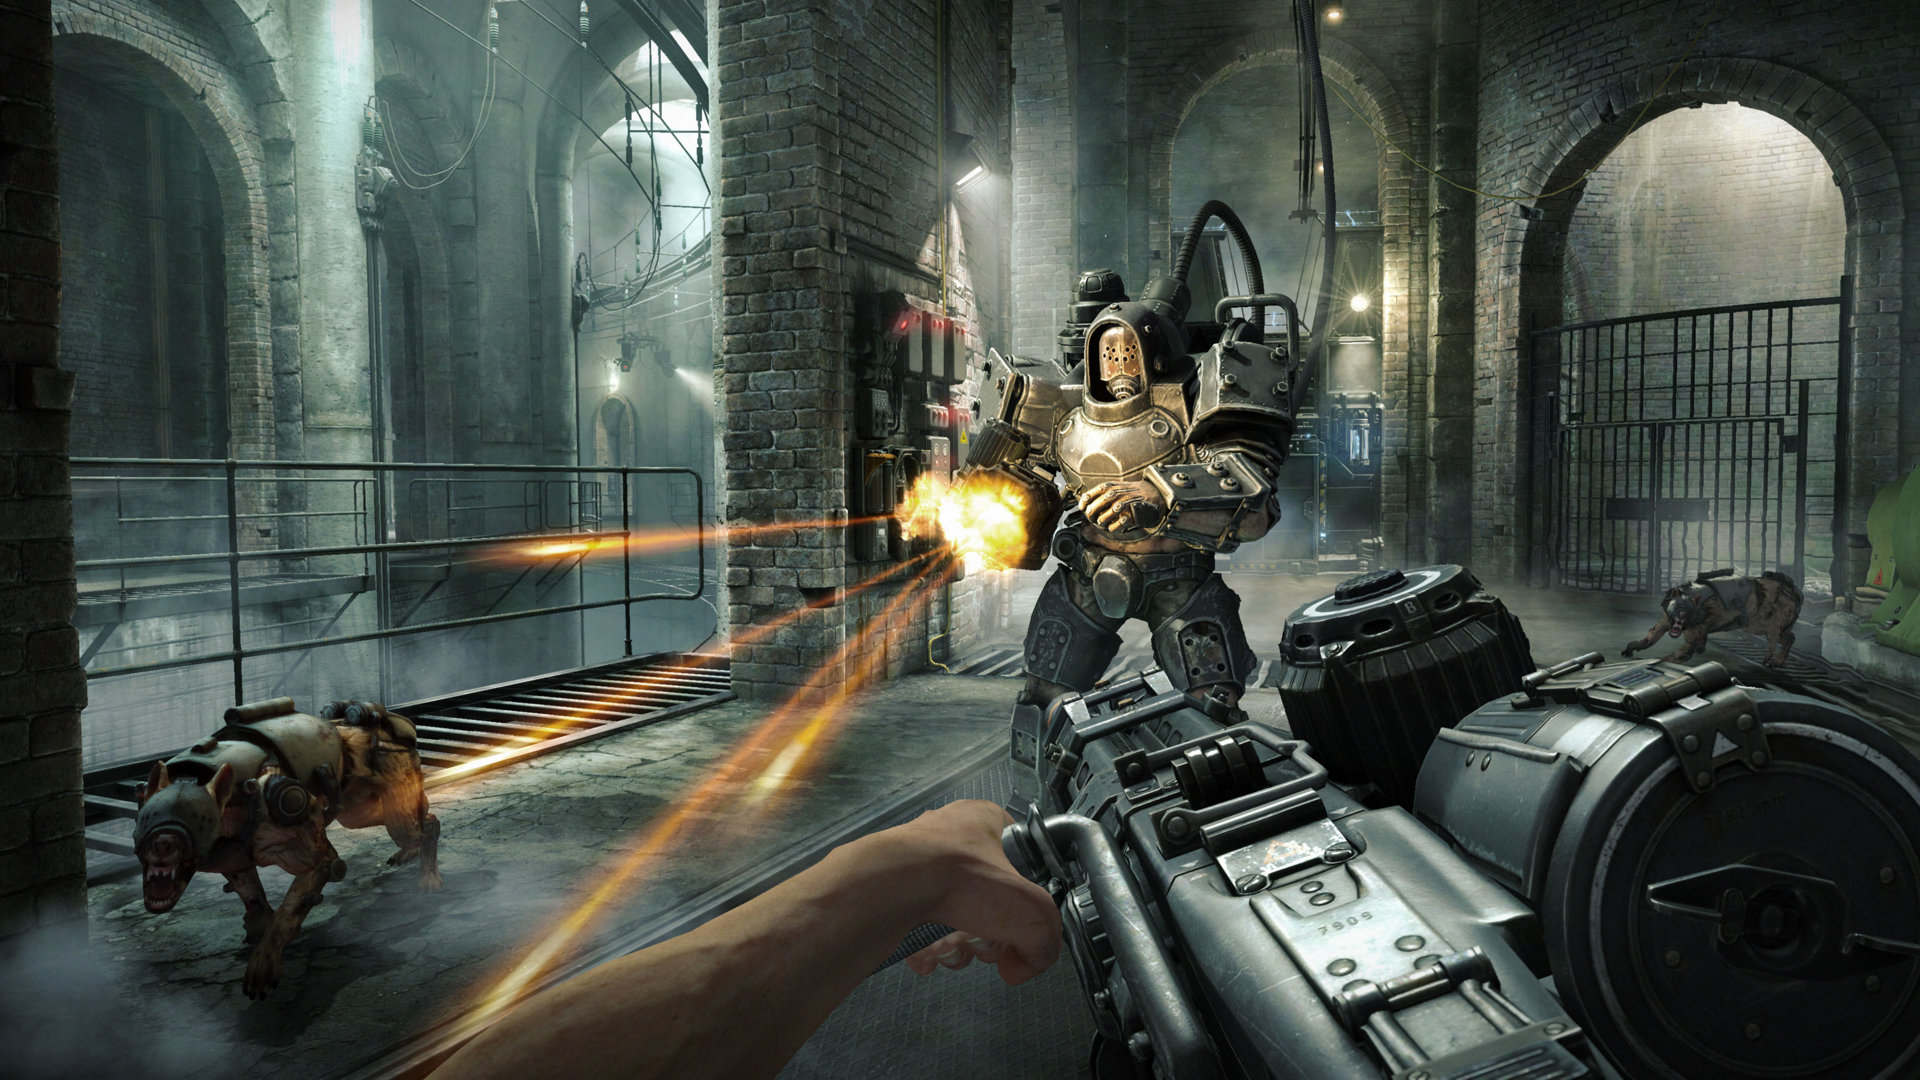 wolfenstein-the-old-blood-screenshot-09-